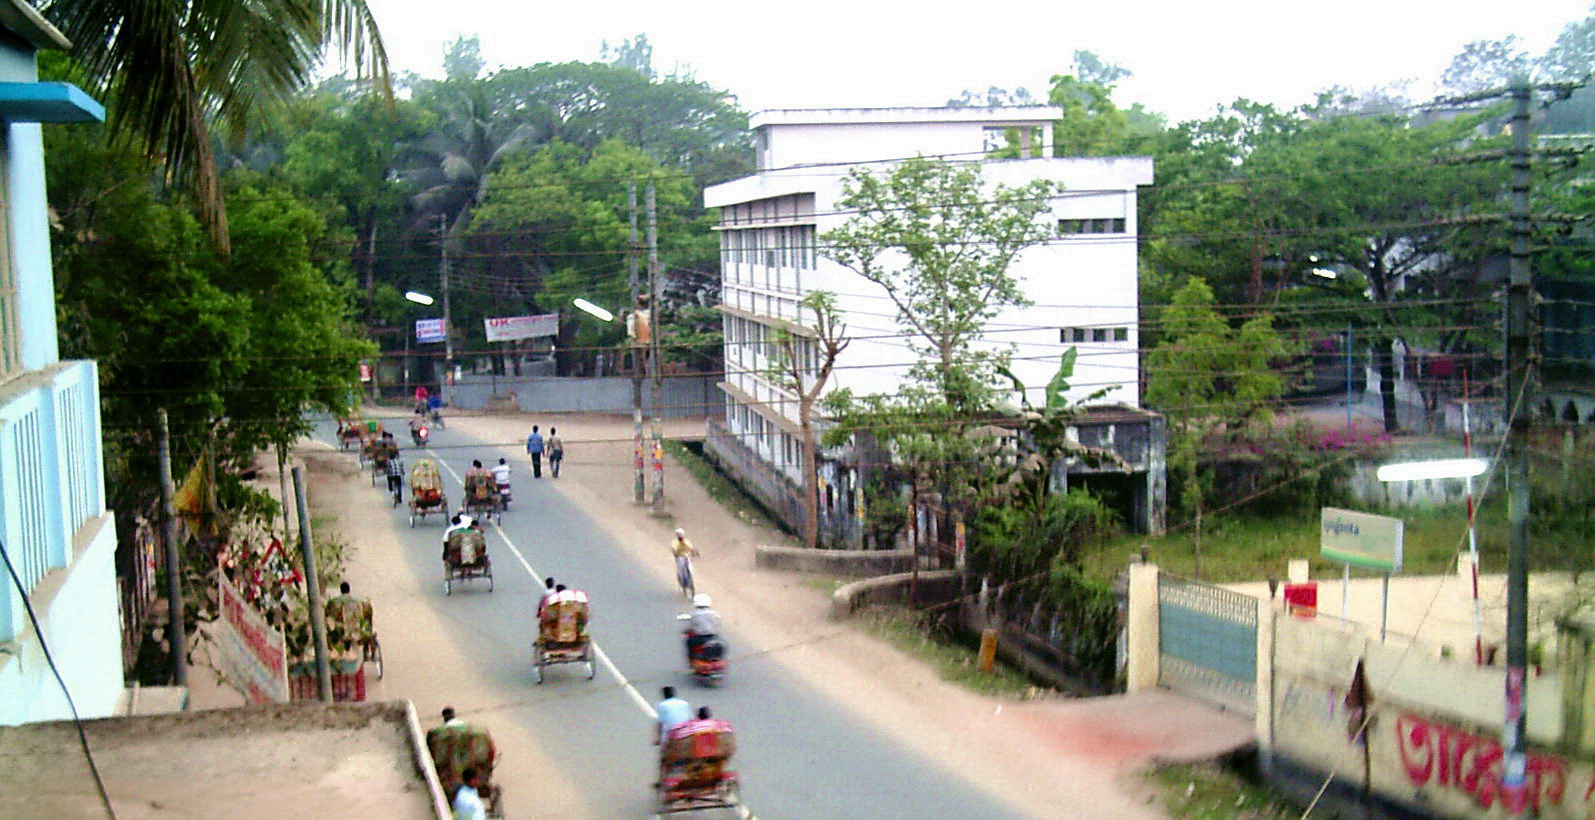 Court_Road,_Comilla.jpg (1595×820)